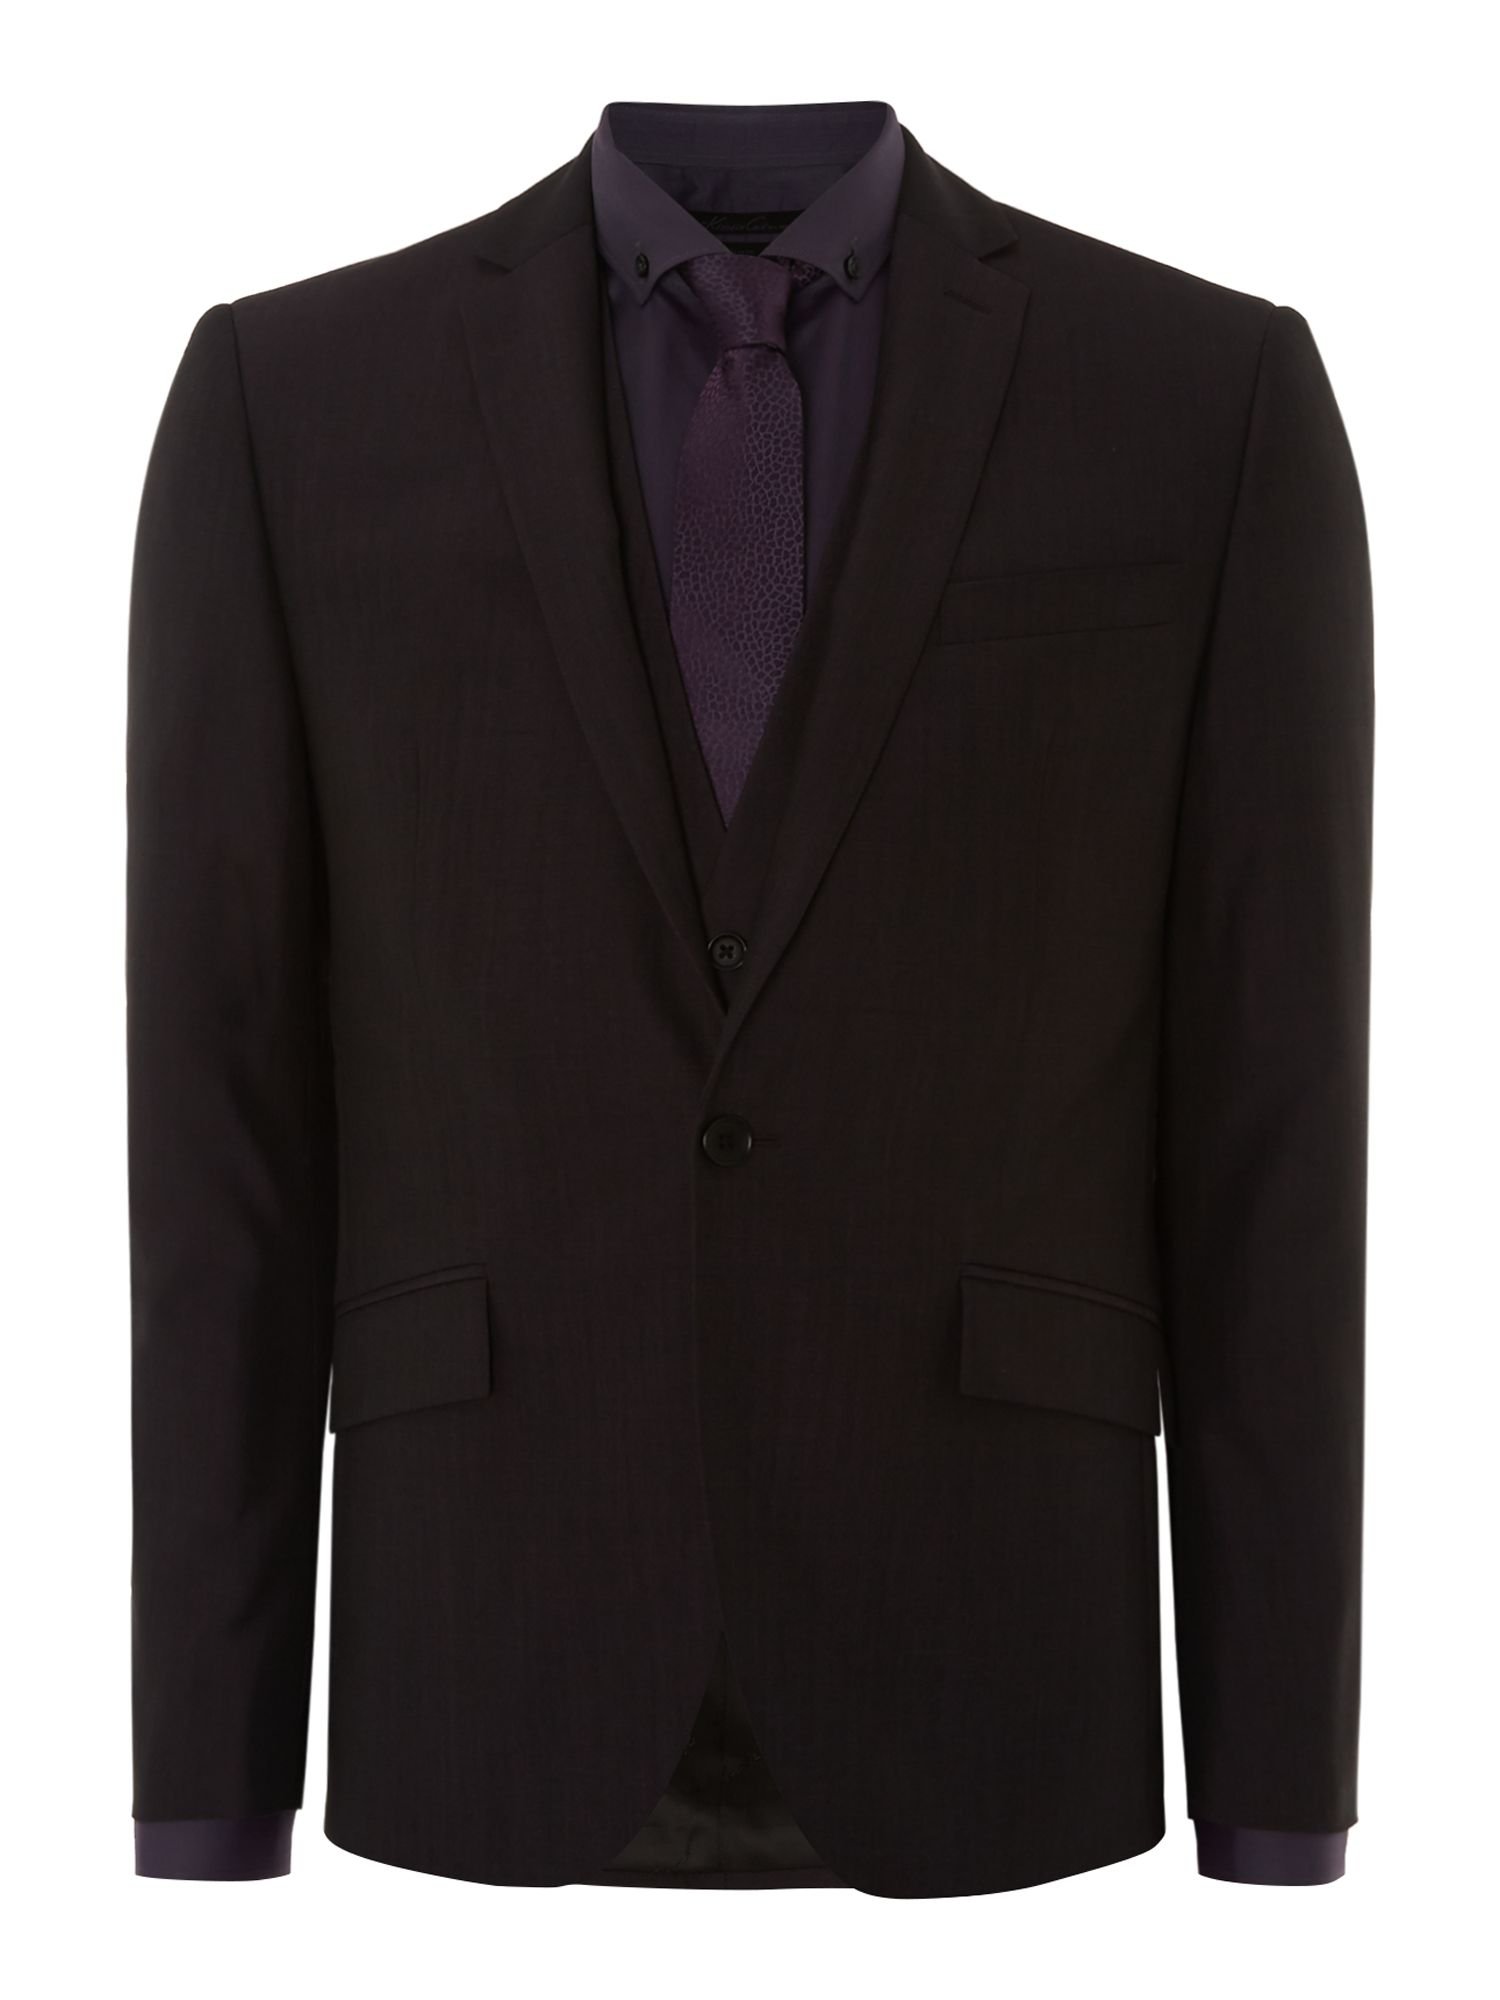 Clarendon slim fit suit